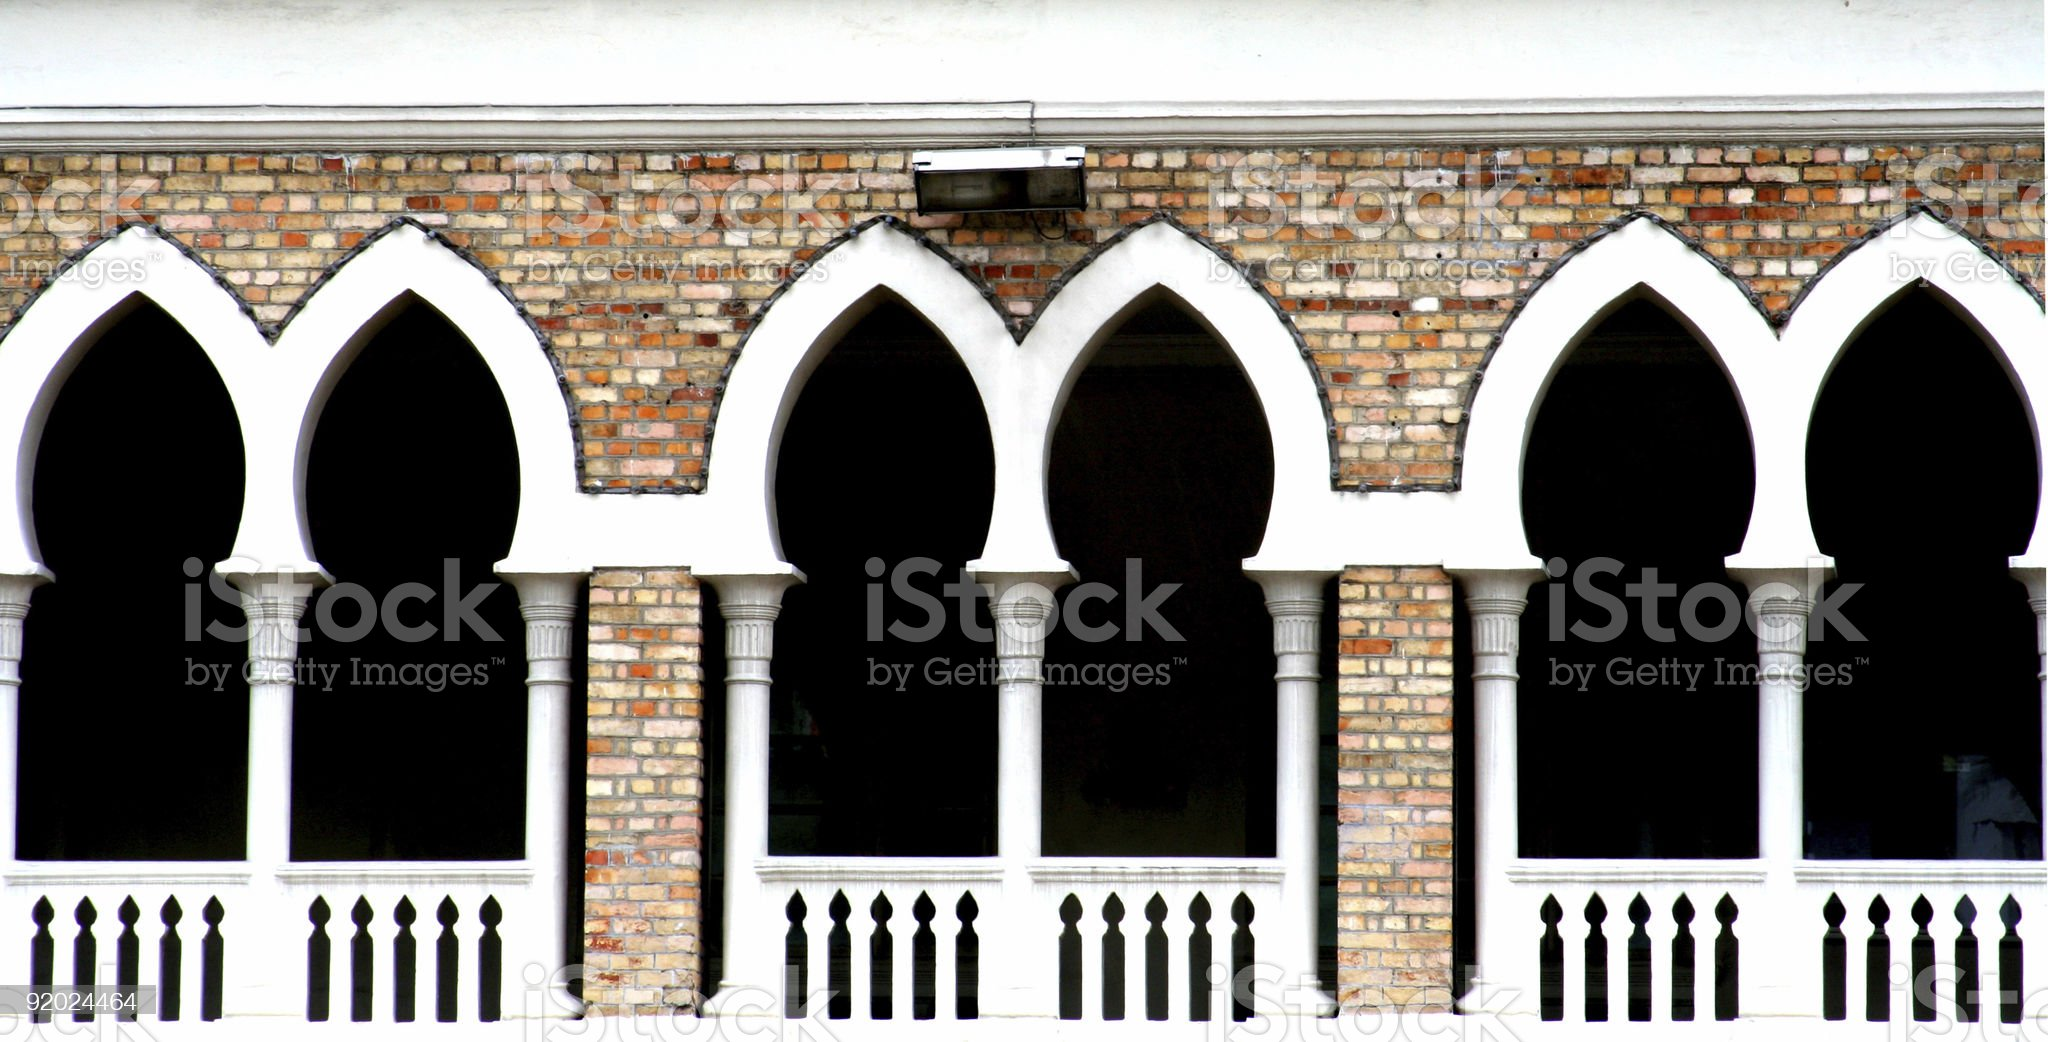 Archway royalty-free stock photo